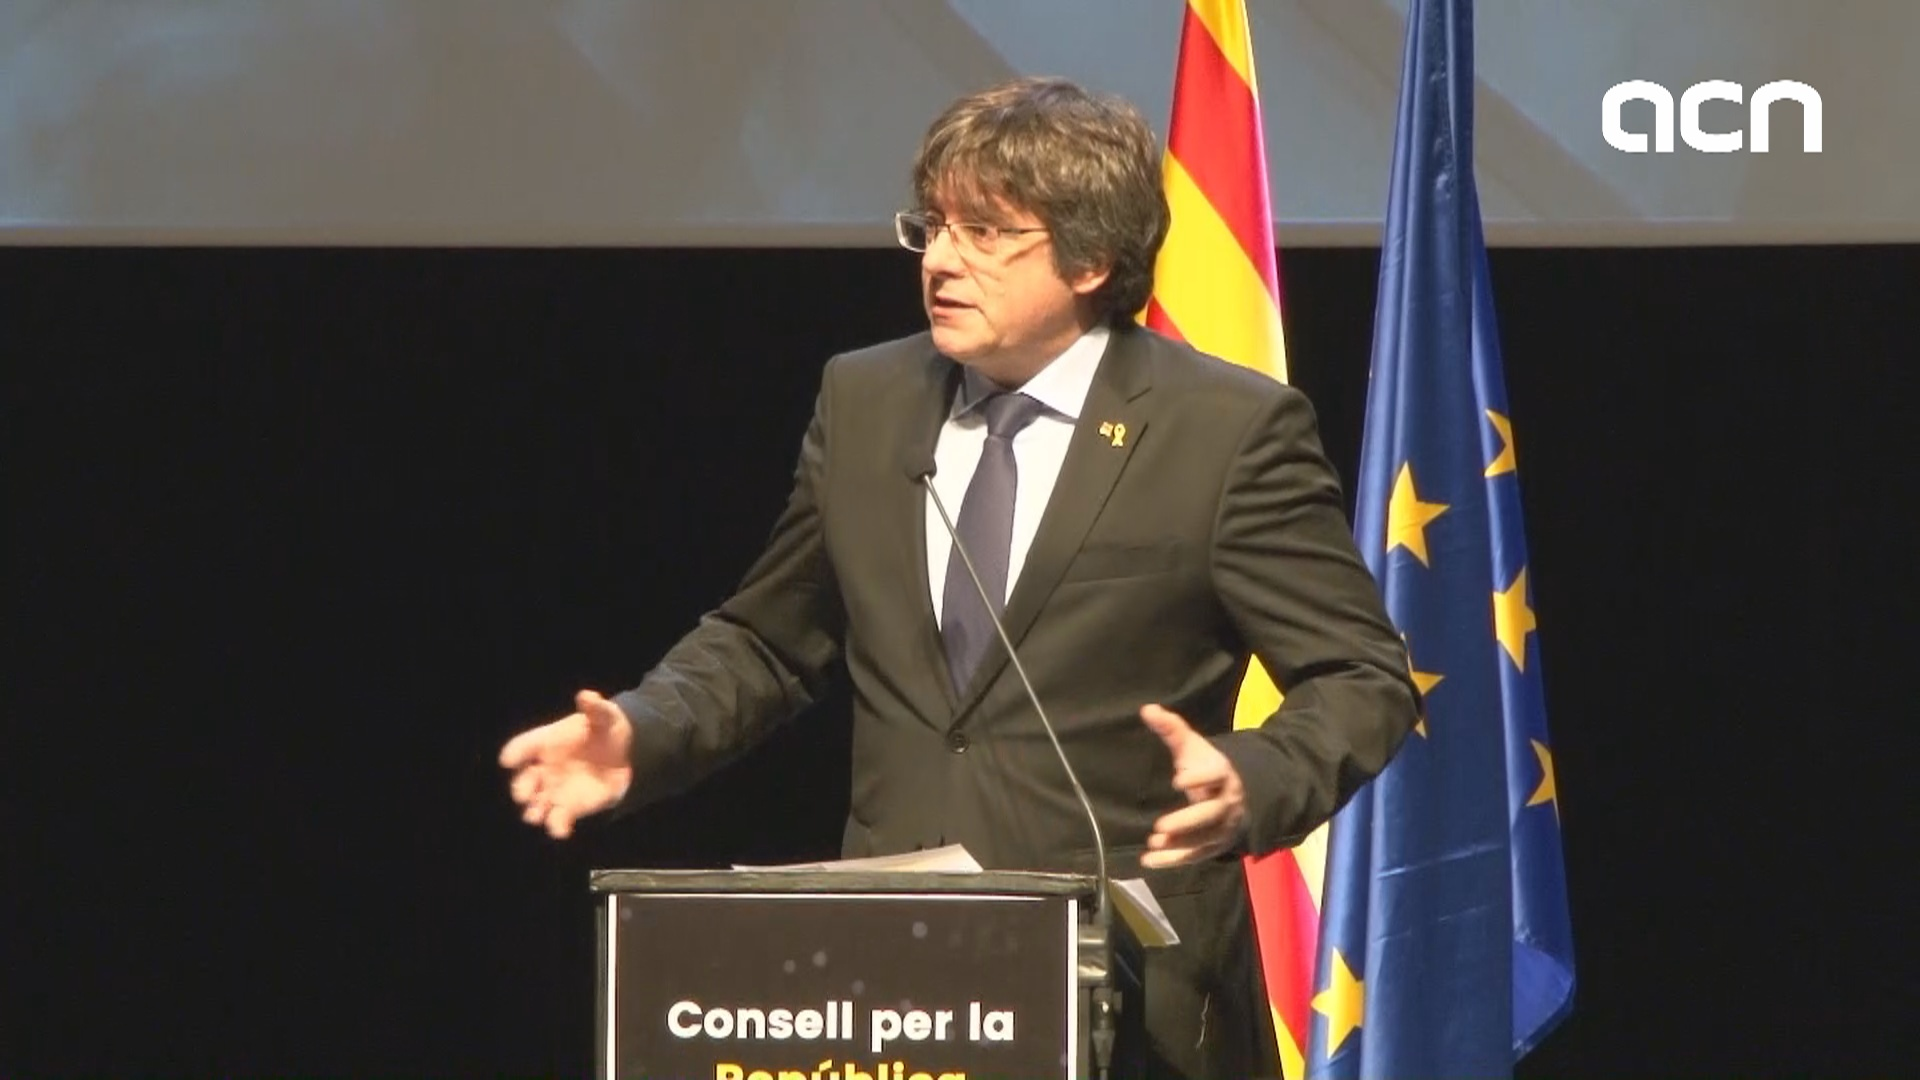 Carles Puigdemont describes the goals for the Council for the Republic